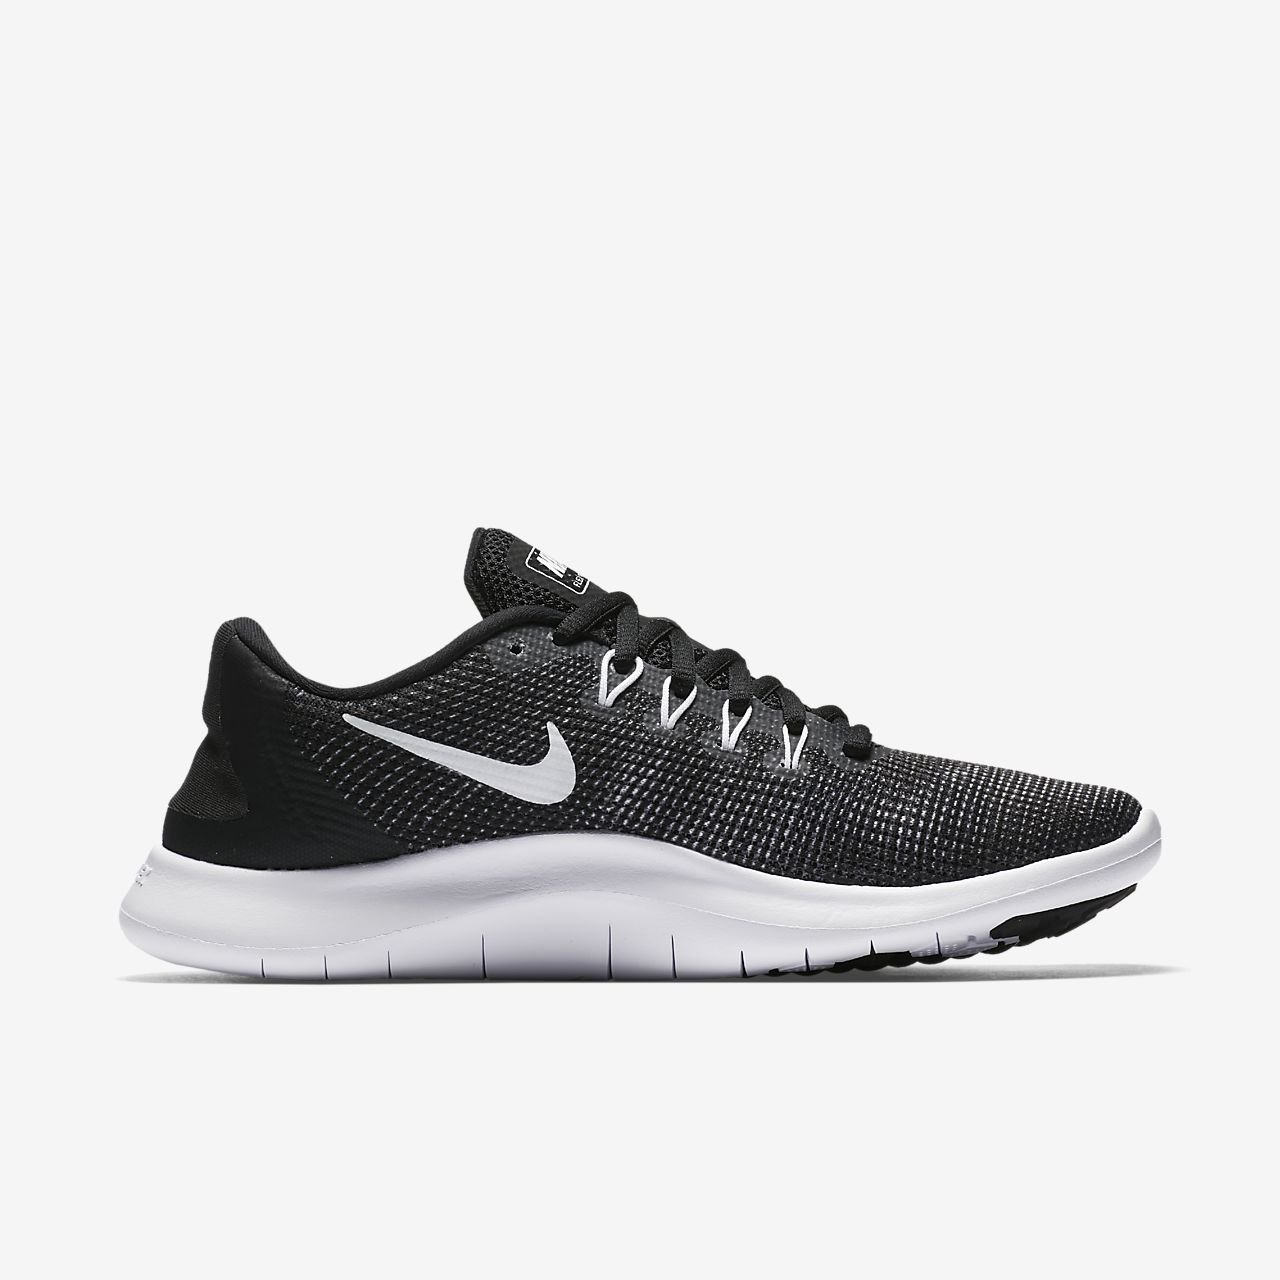 97307f55a17e Nike Flex RN 2018 Women s Running Shoe. Nike.com GB